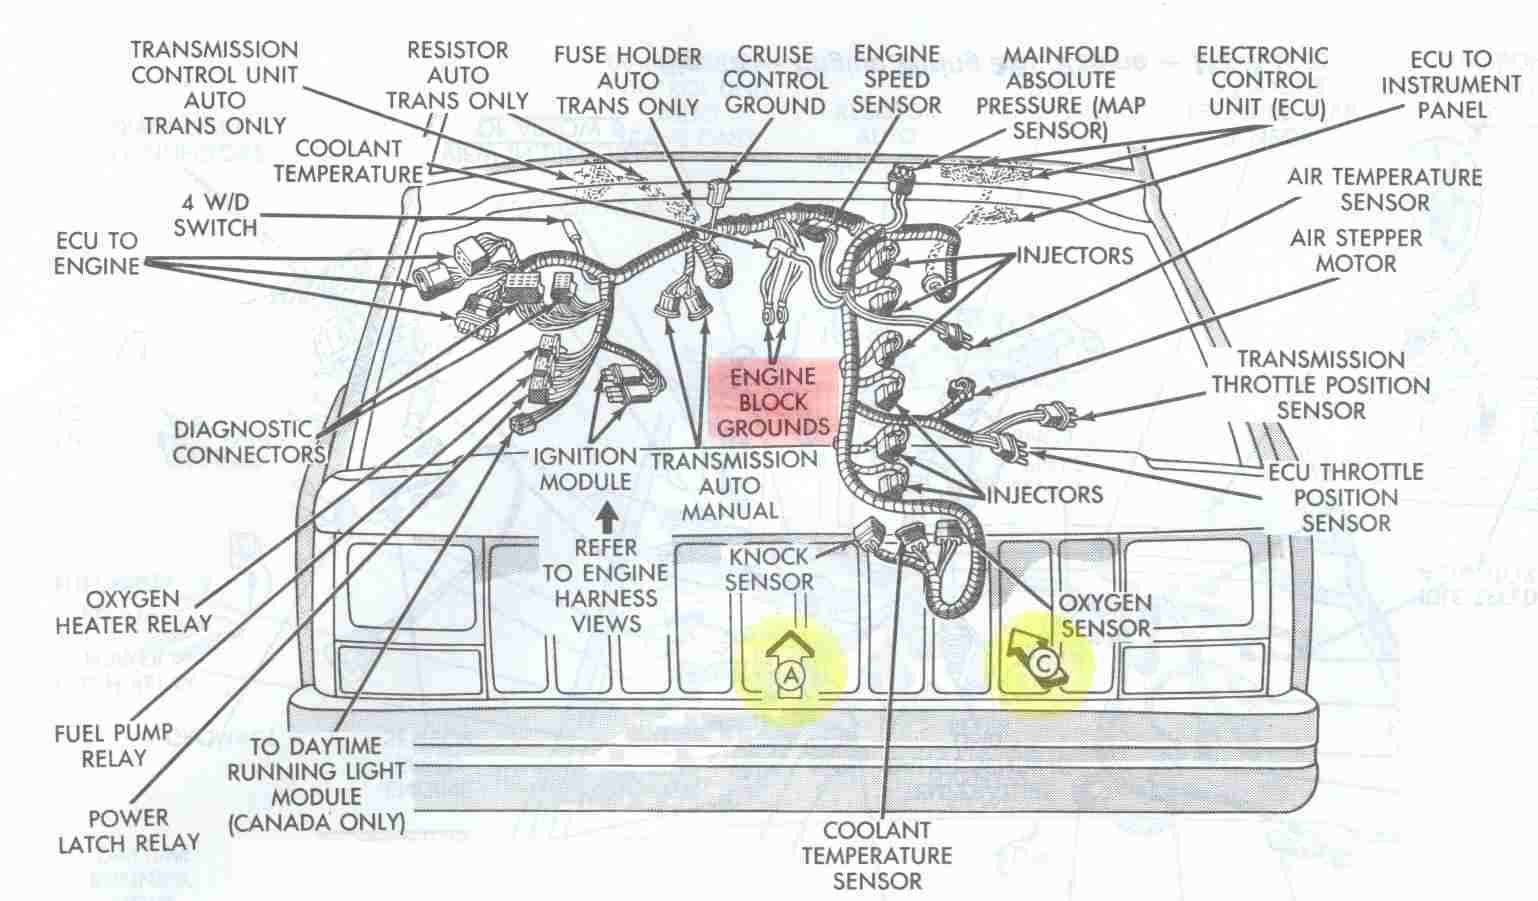 99 jeep grand cherokee laredo wiring diagram hopkins 7 way plug engine bay schematic showing major electrical ground